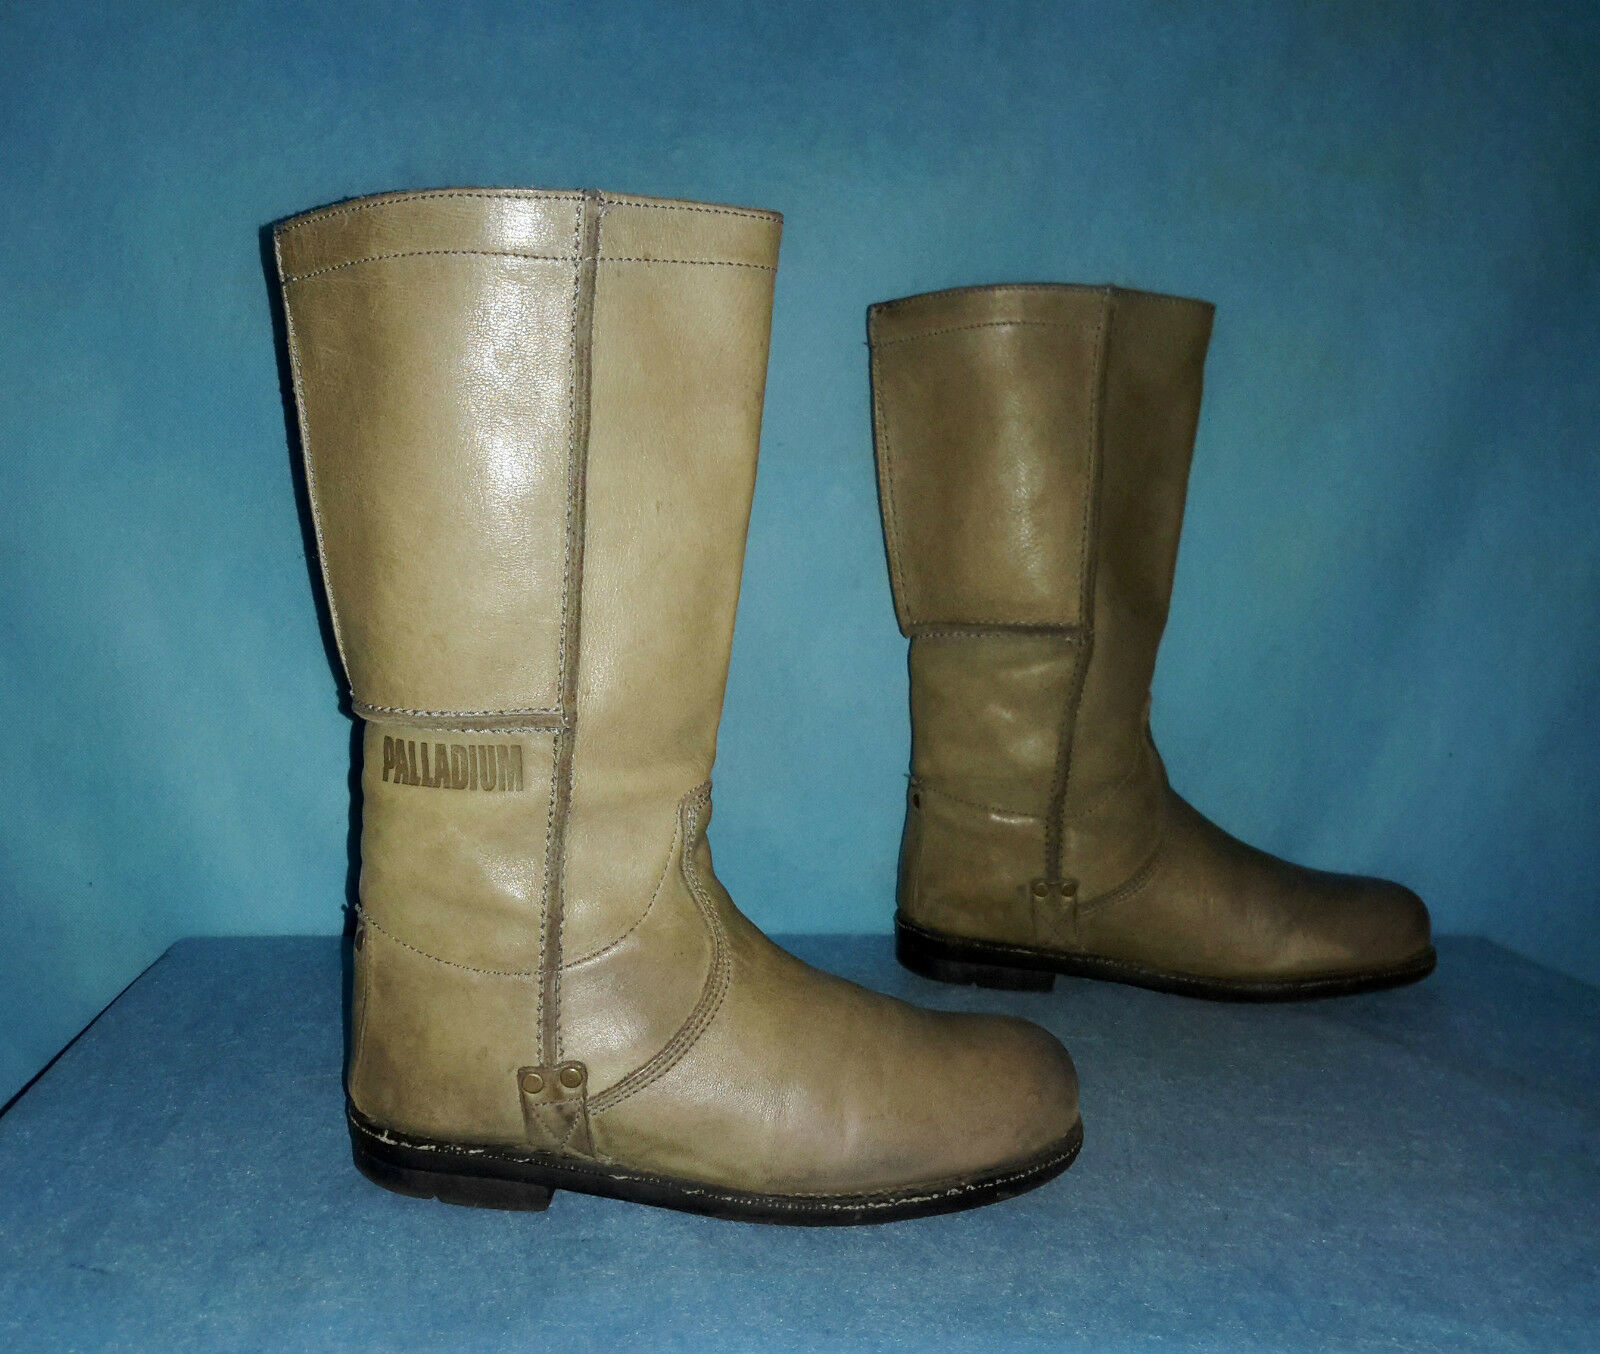 Boots PALLADIUM leather khaki clear size 37 FR good condition general